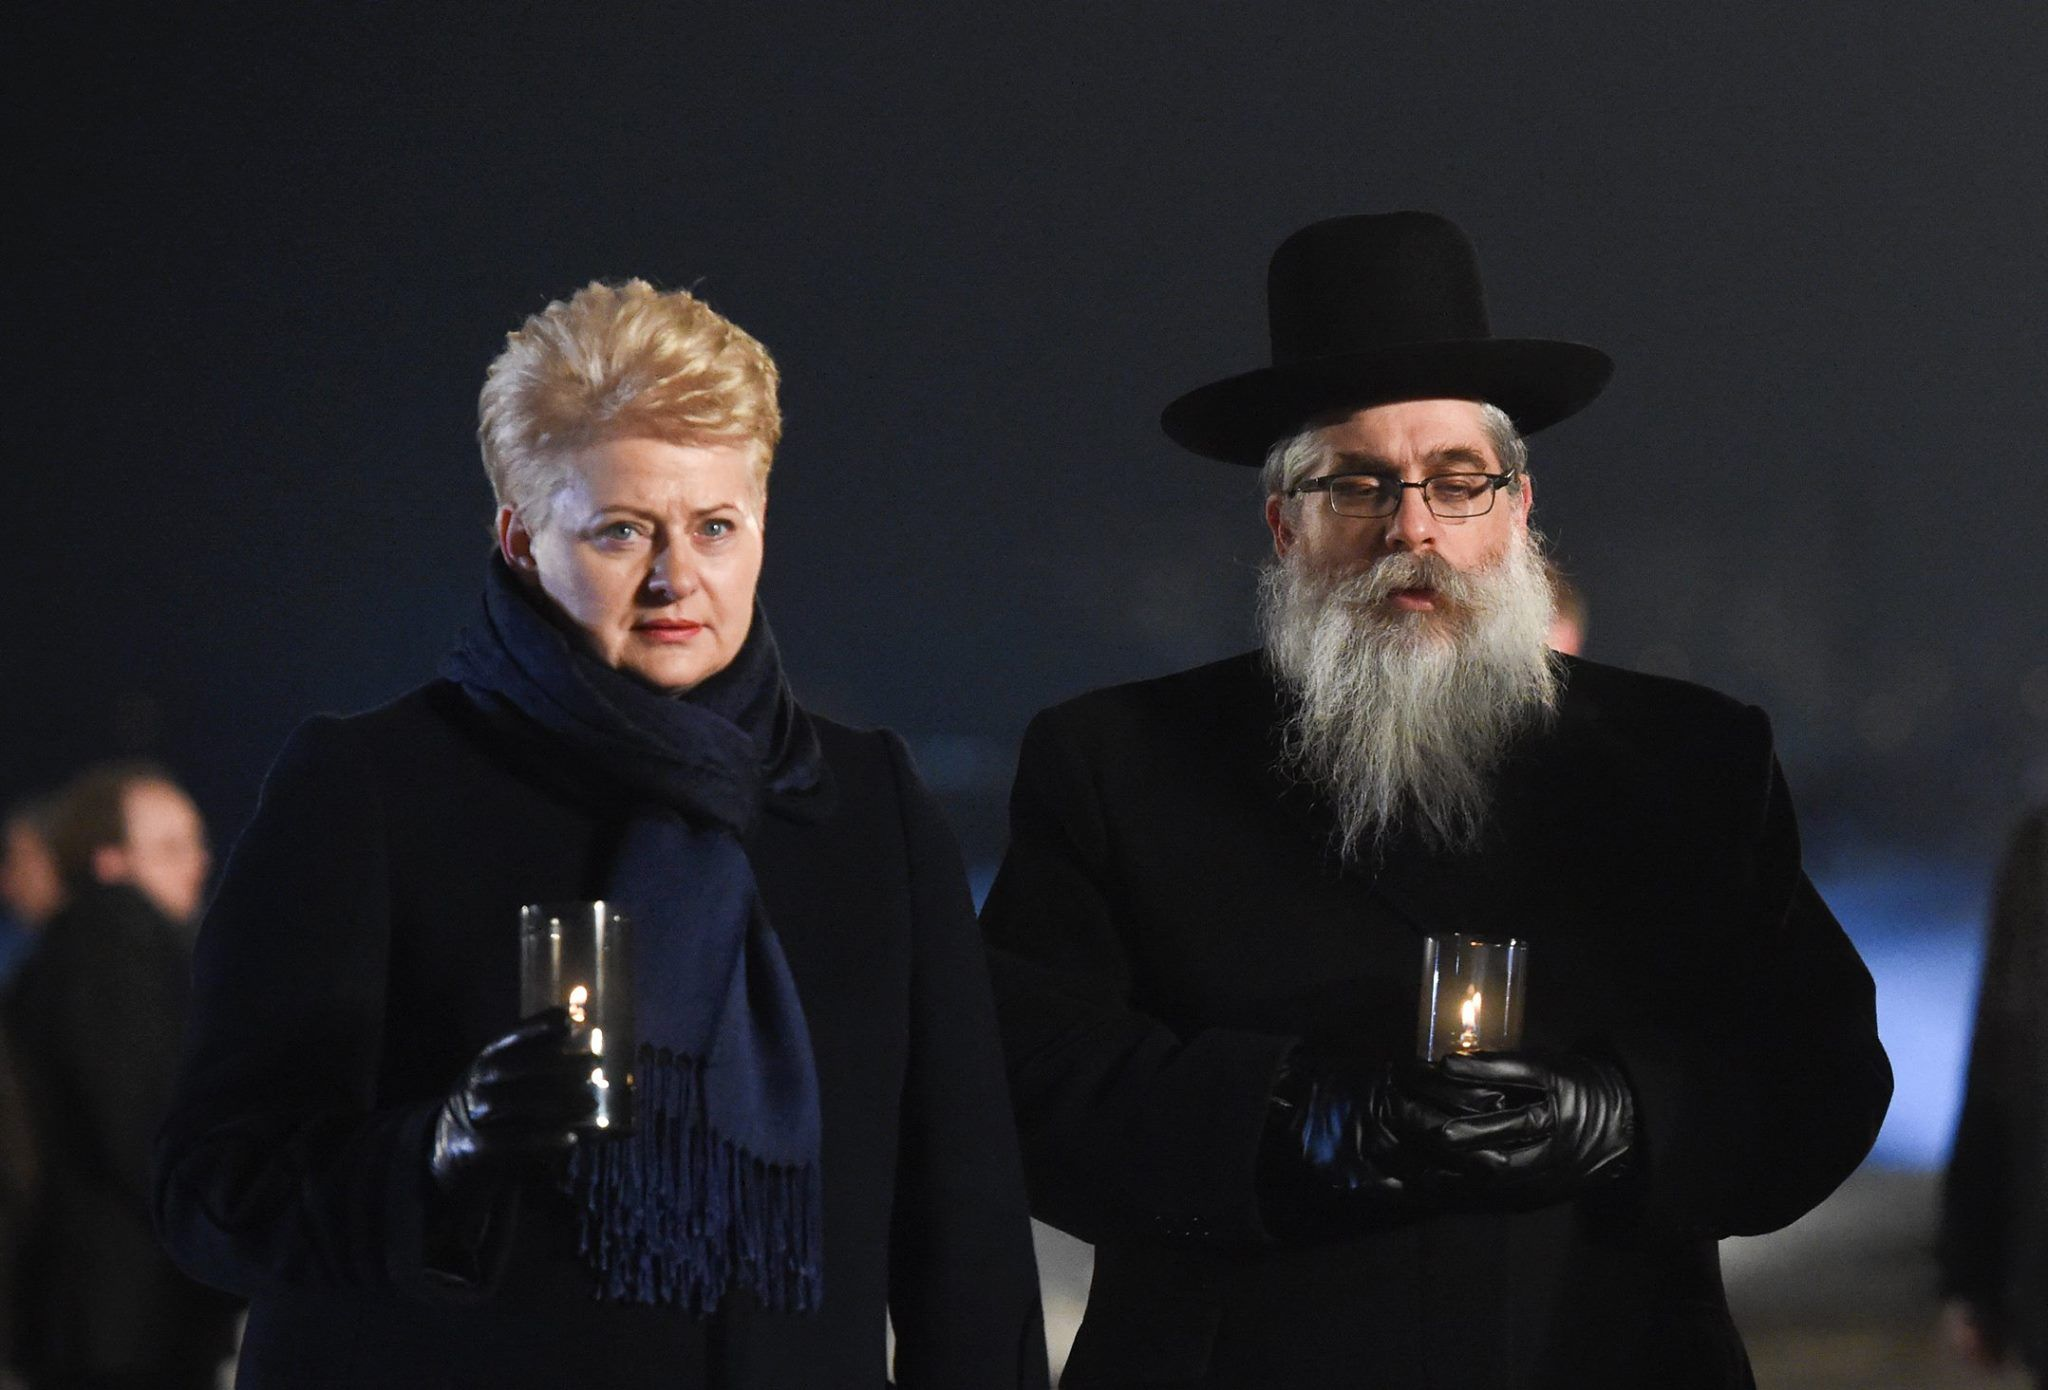 Holocaust Memorial Day. President Grybauskaite at Auschwitz with other world leaders, to mark the 70th anniversary of the liberation of this concentration camp..jpg (2048×1390)